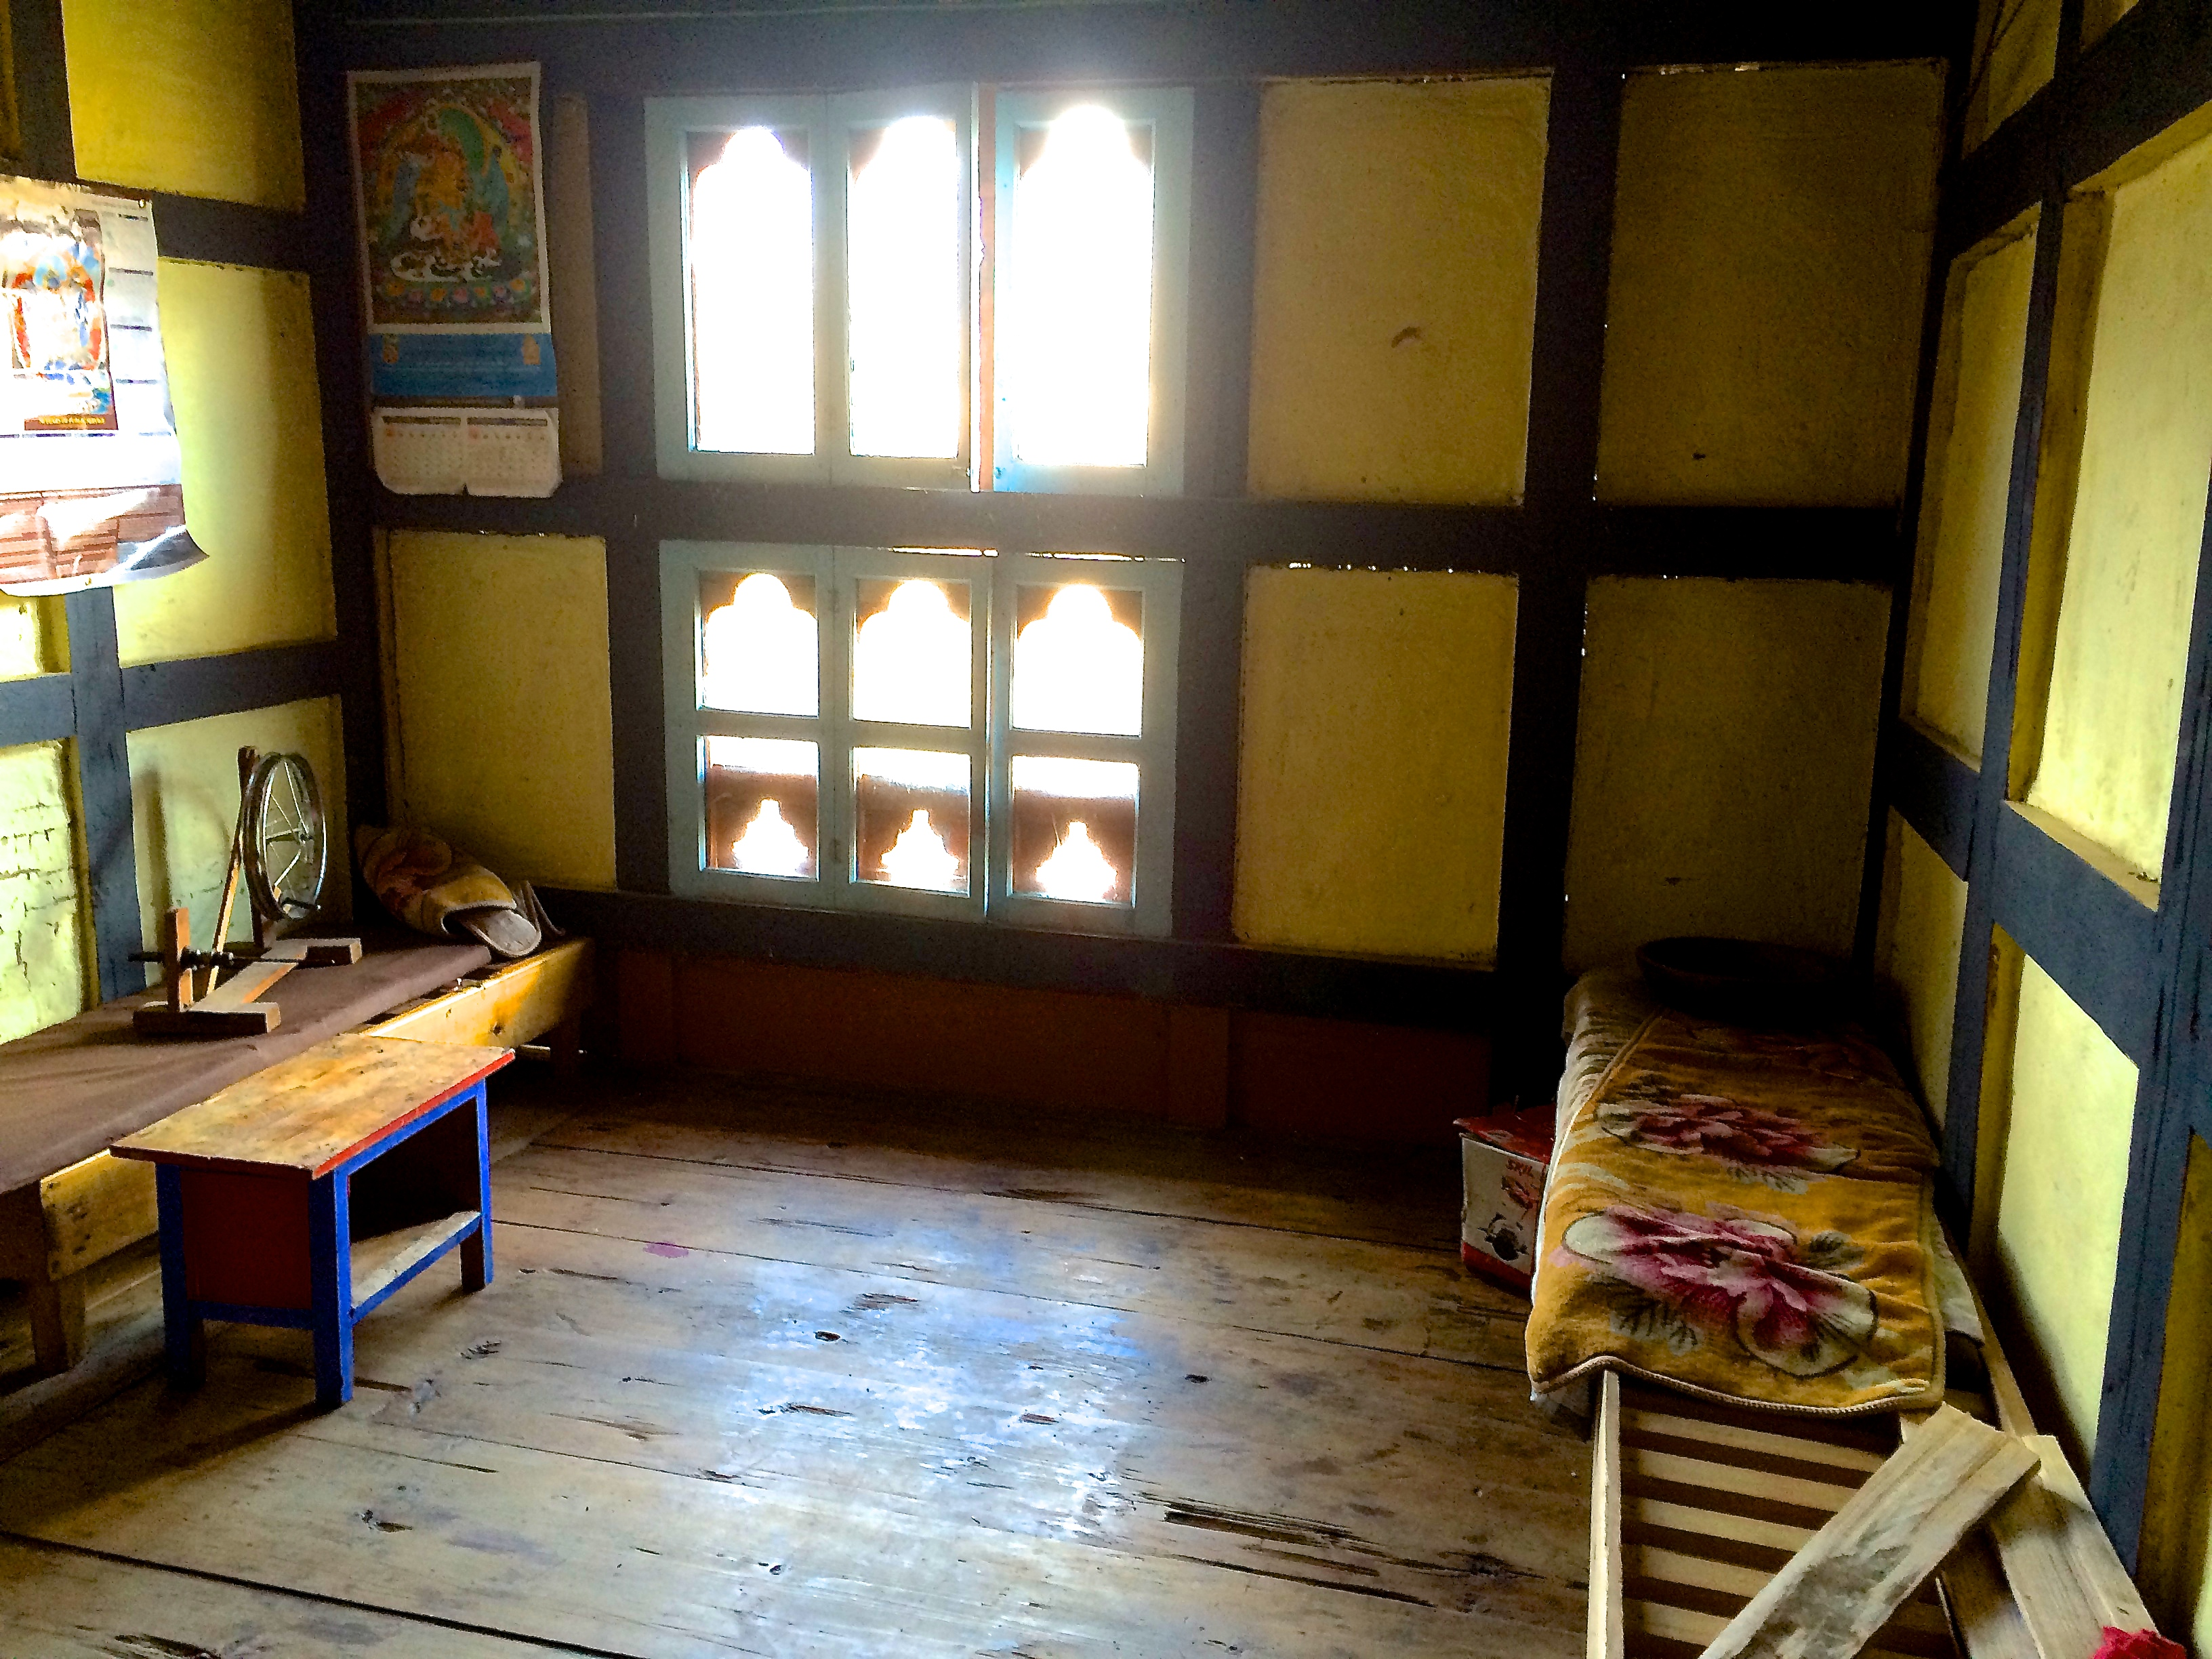 Living room in home in Bhutan